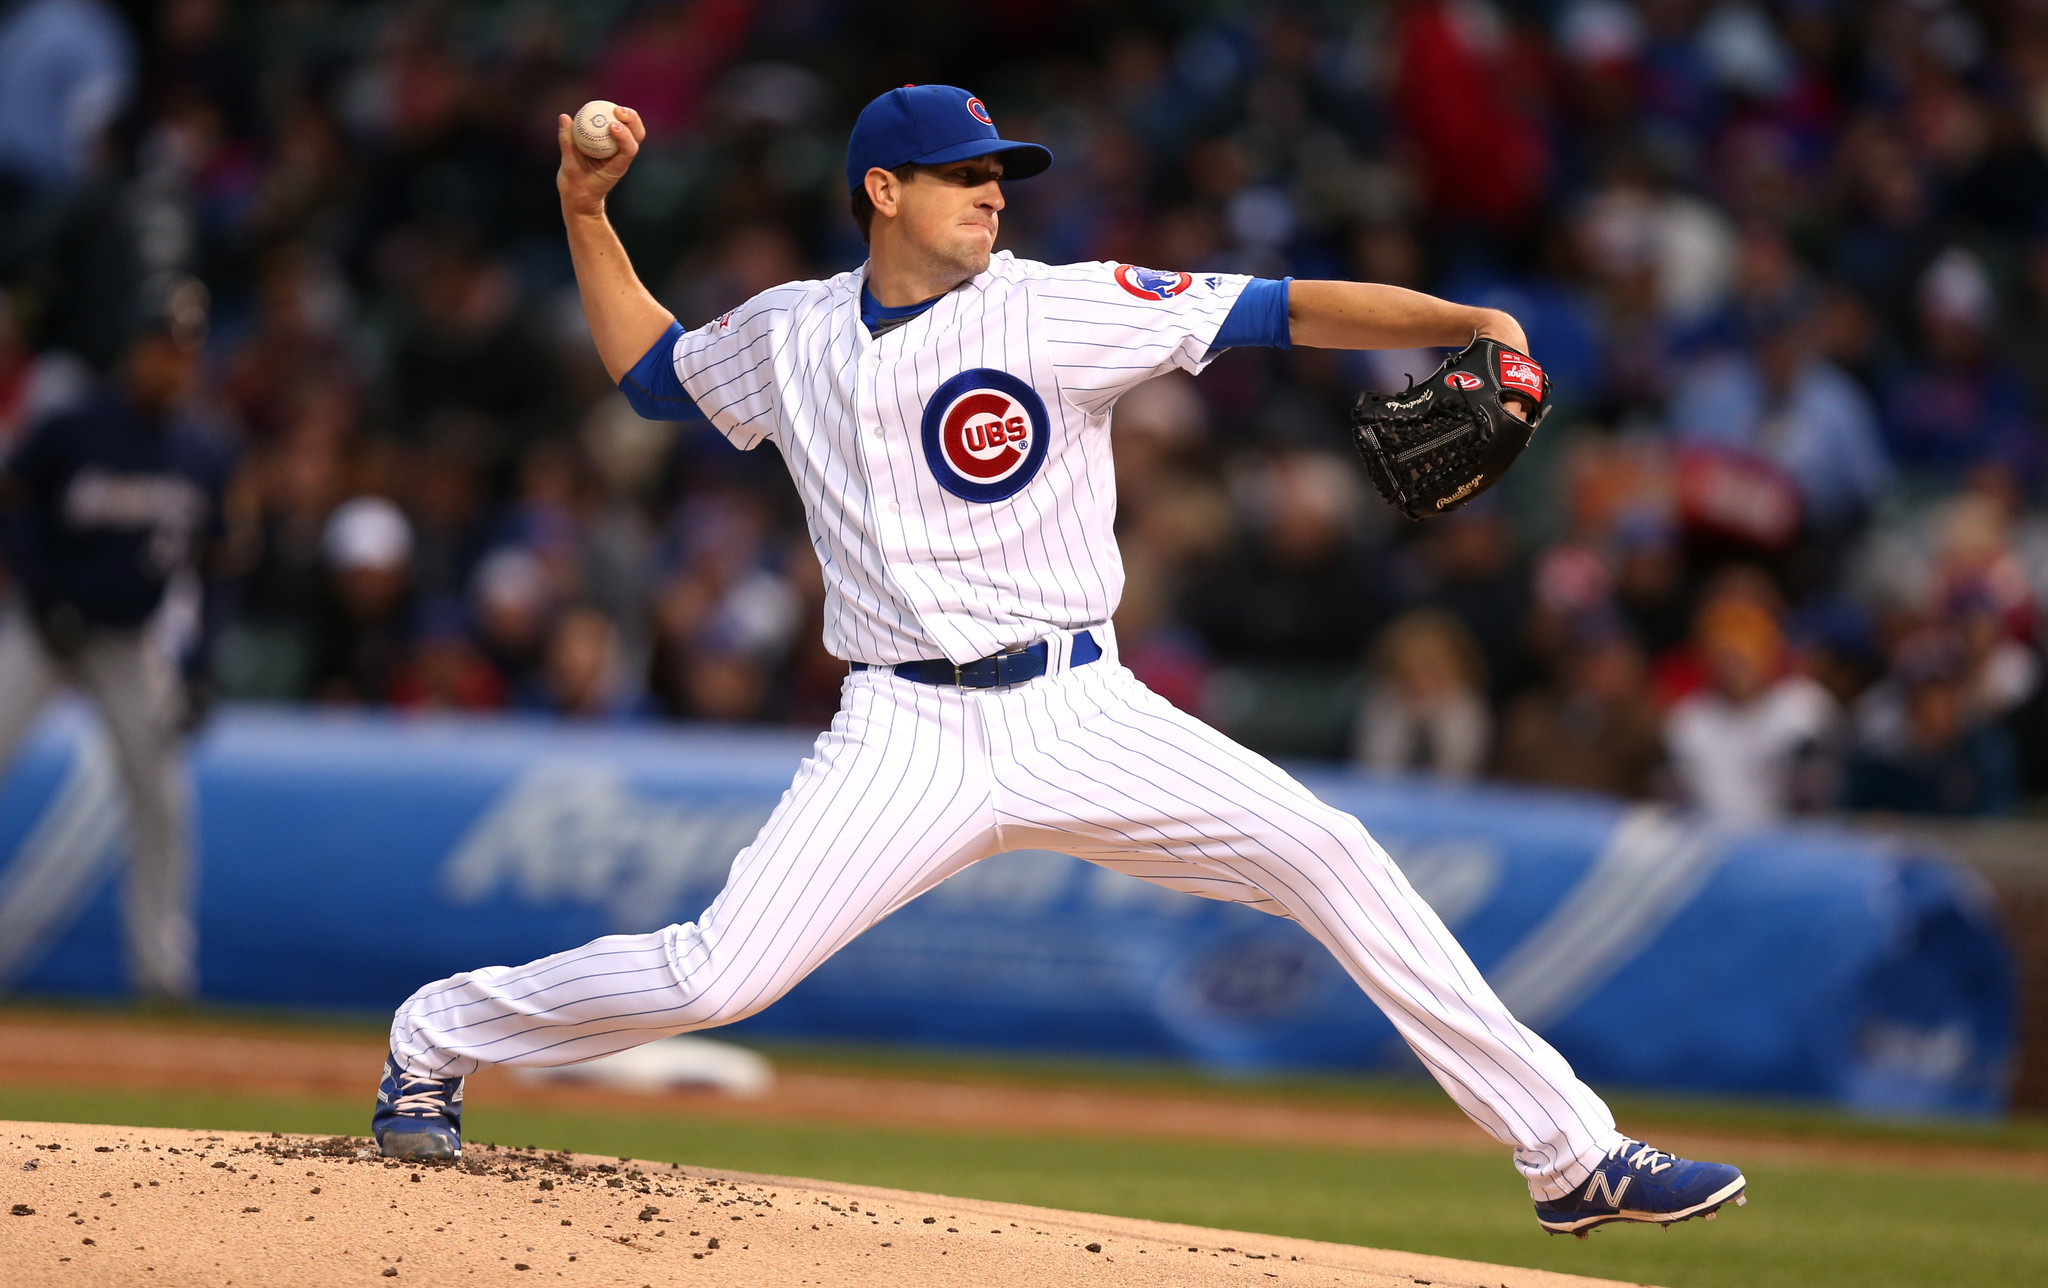 Ct-cubs-tip-brewers-spt-0427-20160426